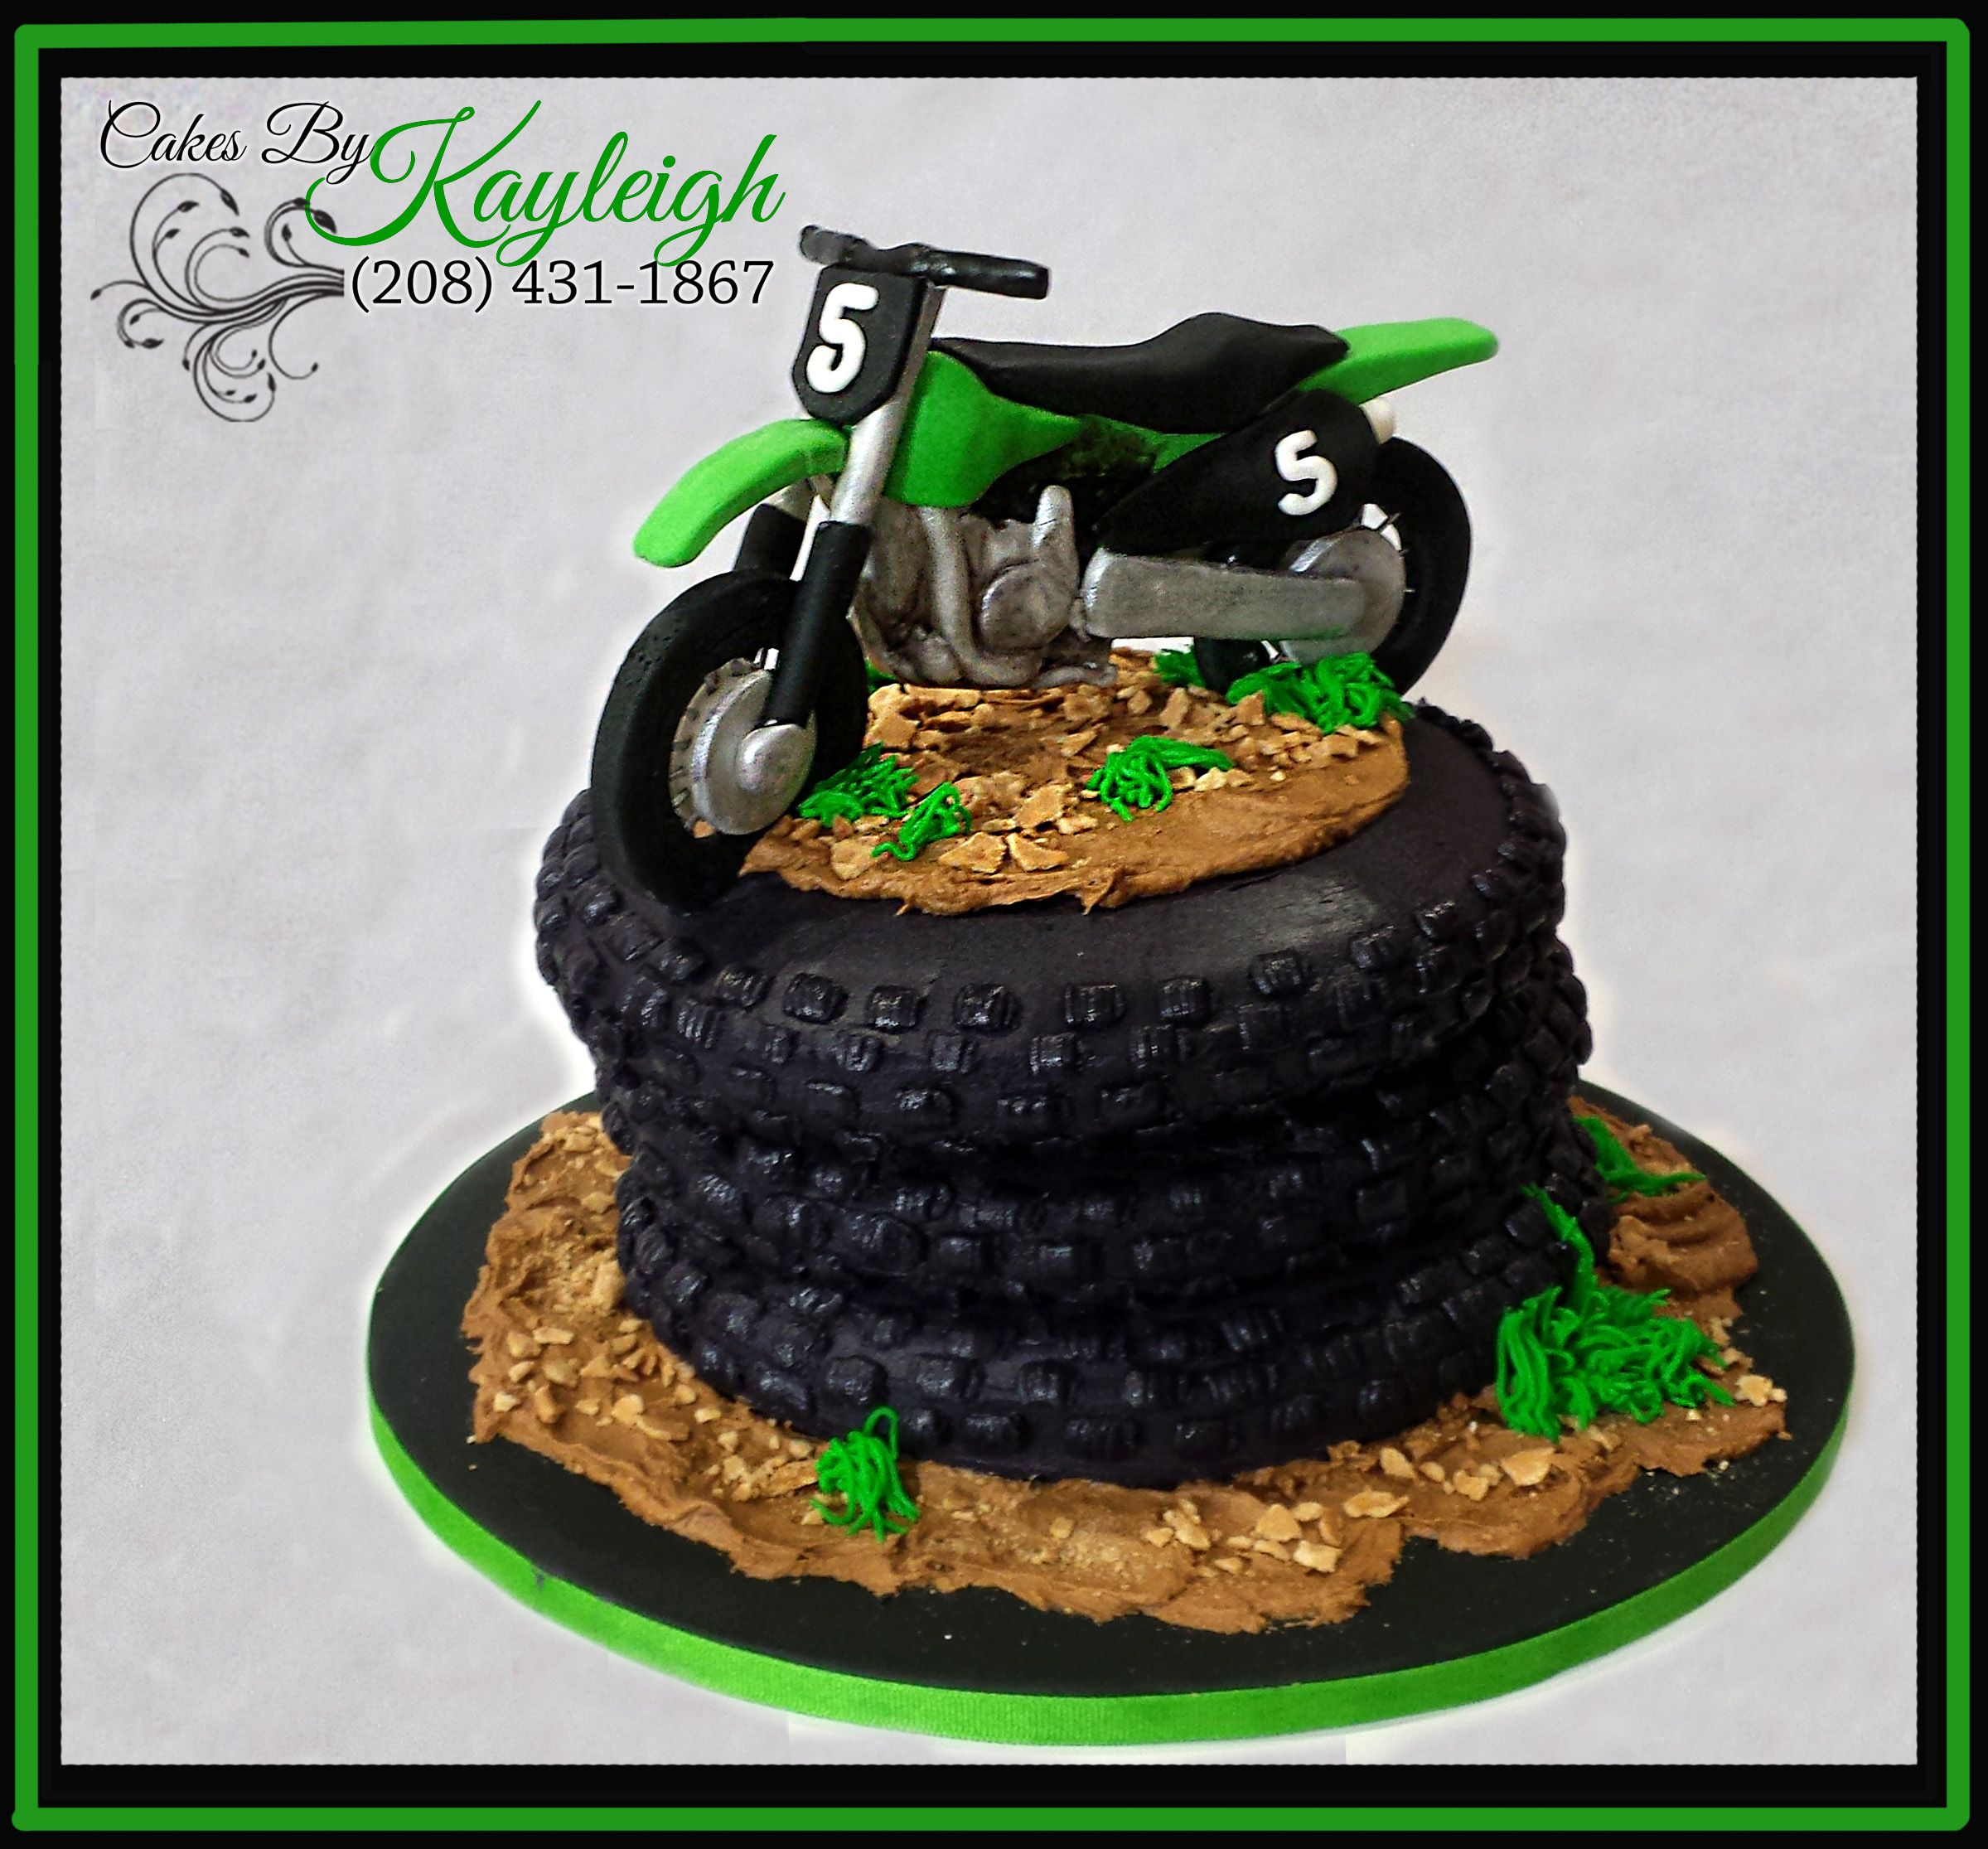 Awe Inspiring Dirt Bike Birthday Cake Fondant Dirt Bike Topper On Top Of 8 Funny Birthday Cards Online Inifofree Goldxyz